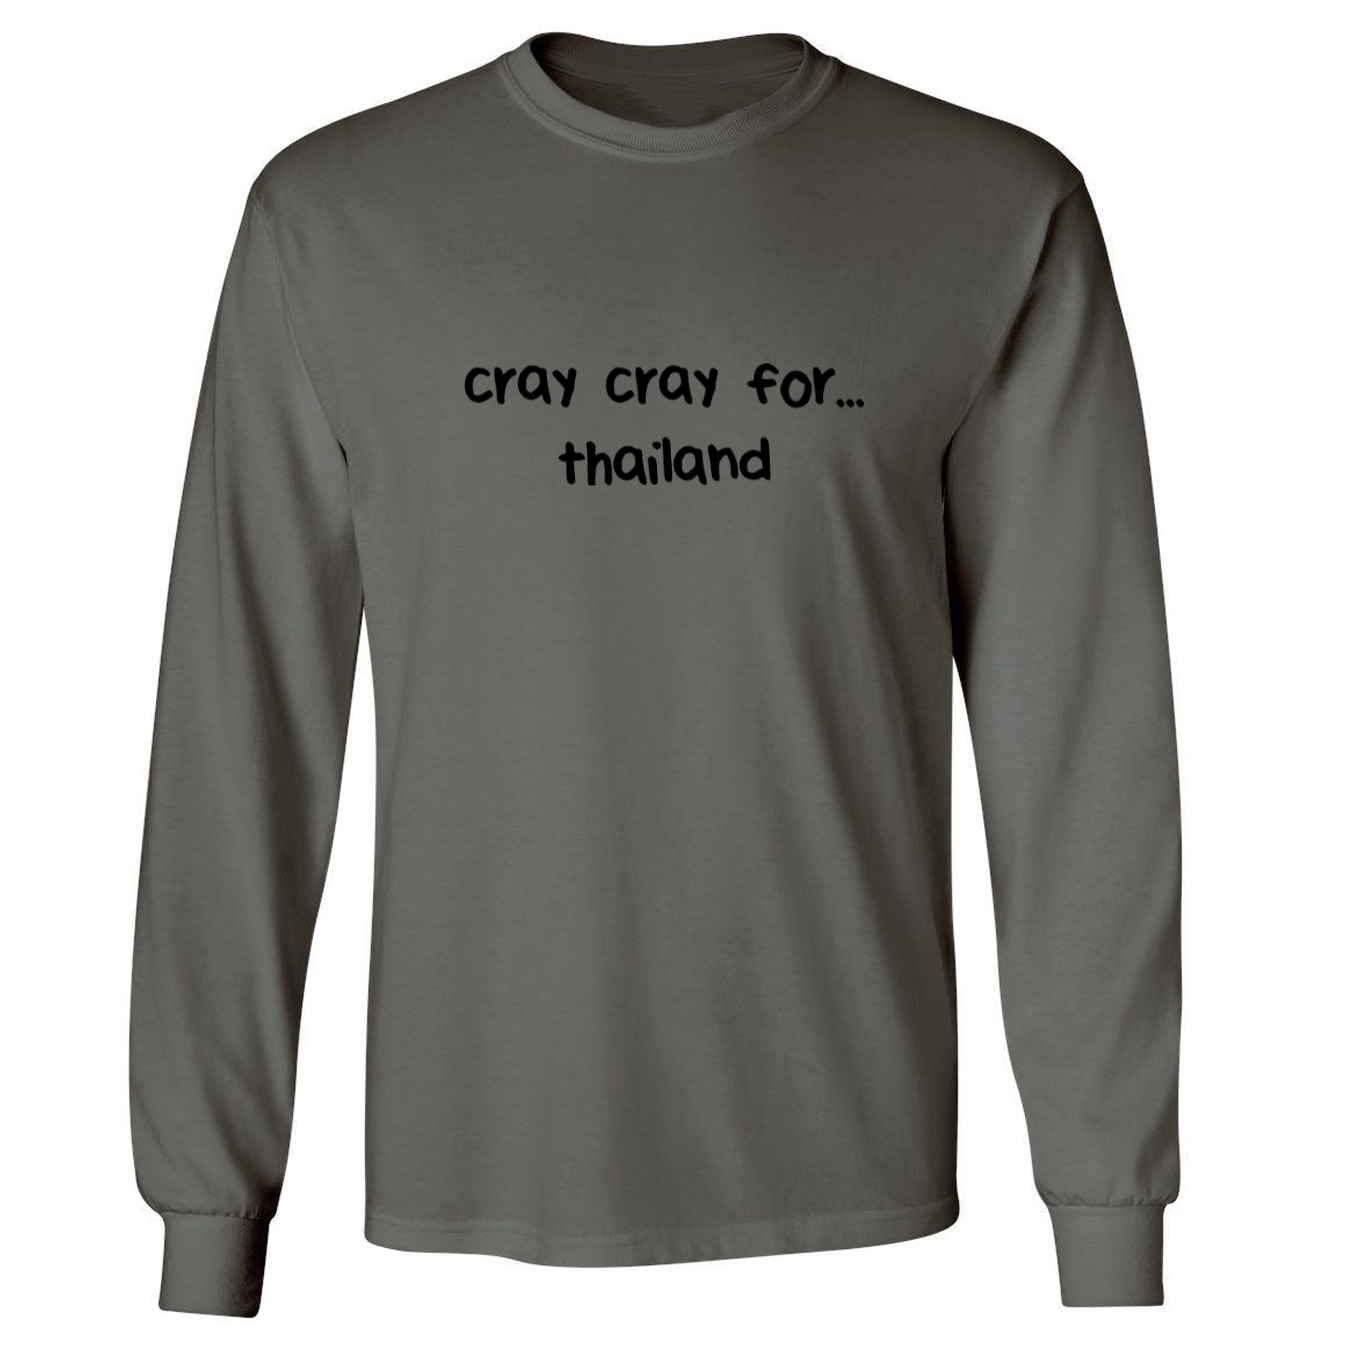 Mashed Clothing Cray Cray For thailand Adult Long Sleeve T-Shirt at Sears.com